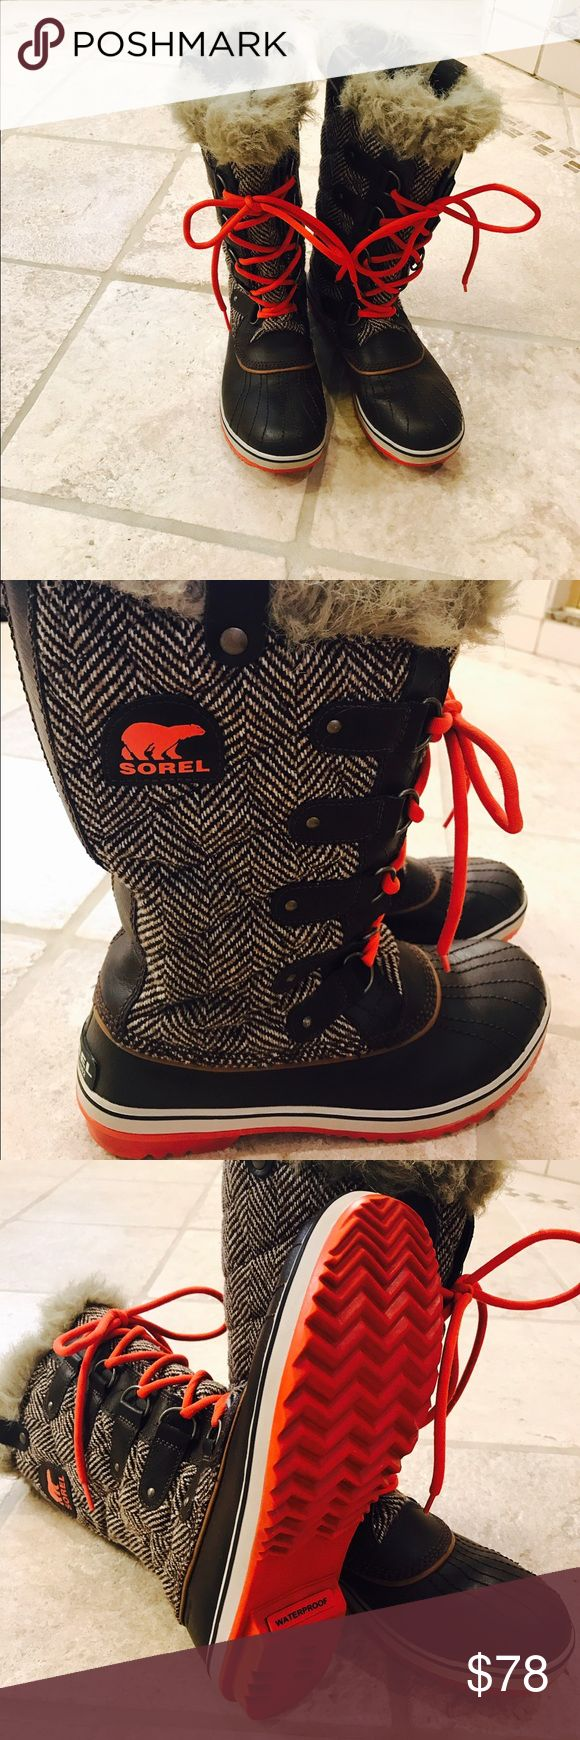 Sorel Snow Boots Brown waterproof snow boots with orange soles and shoe laces.  Topped with faux fur to keep your feet warm while sporting a little style.  Size 11.  This particular boot runs small.  I would size up one size. Sorel Shoes Winter & Rain Boots